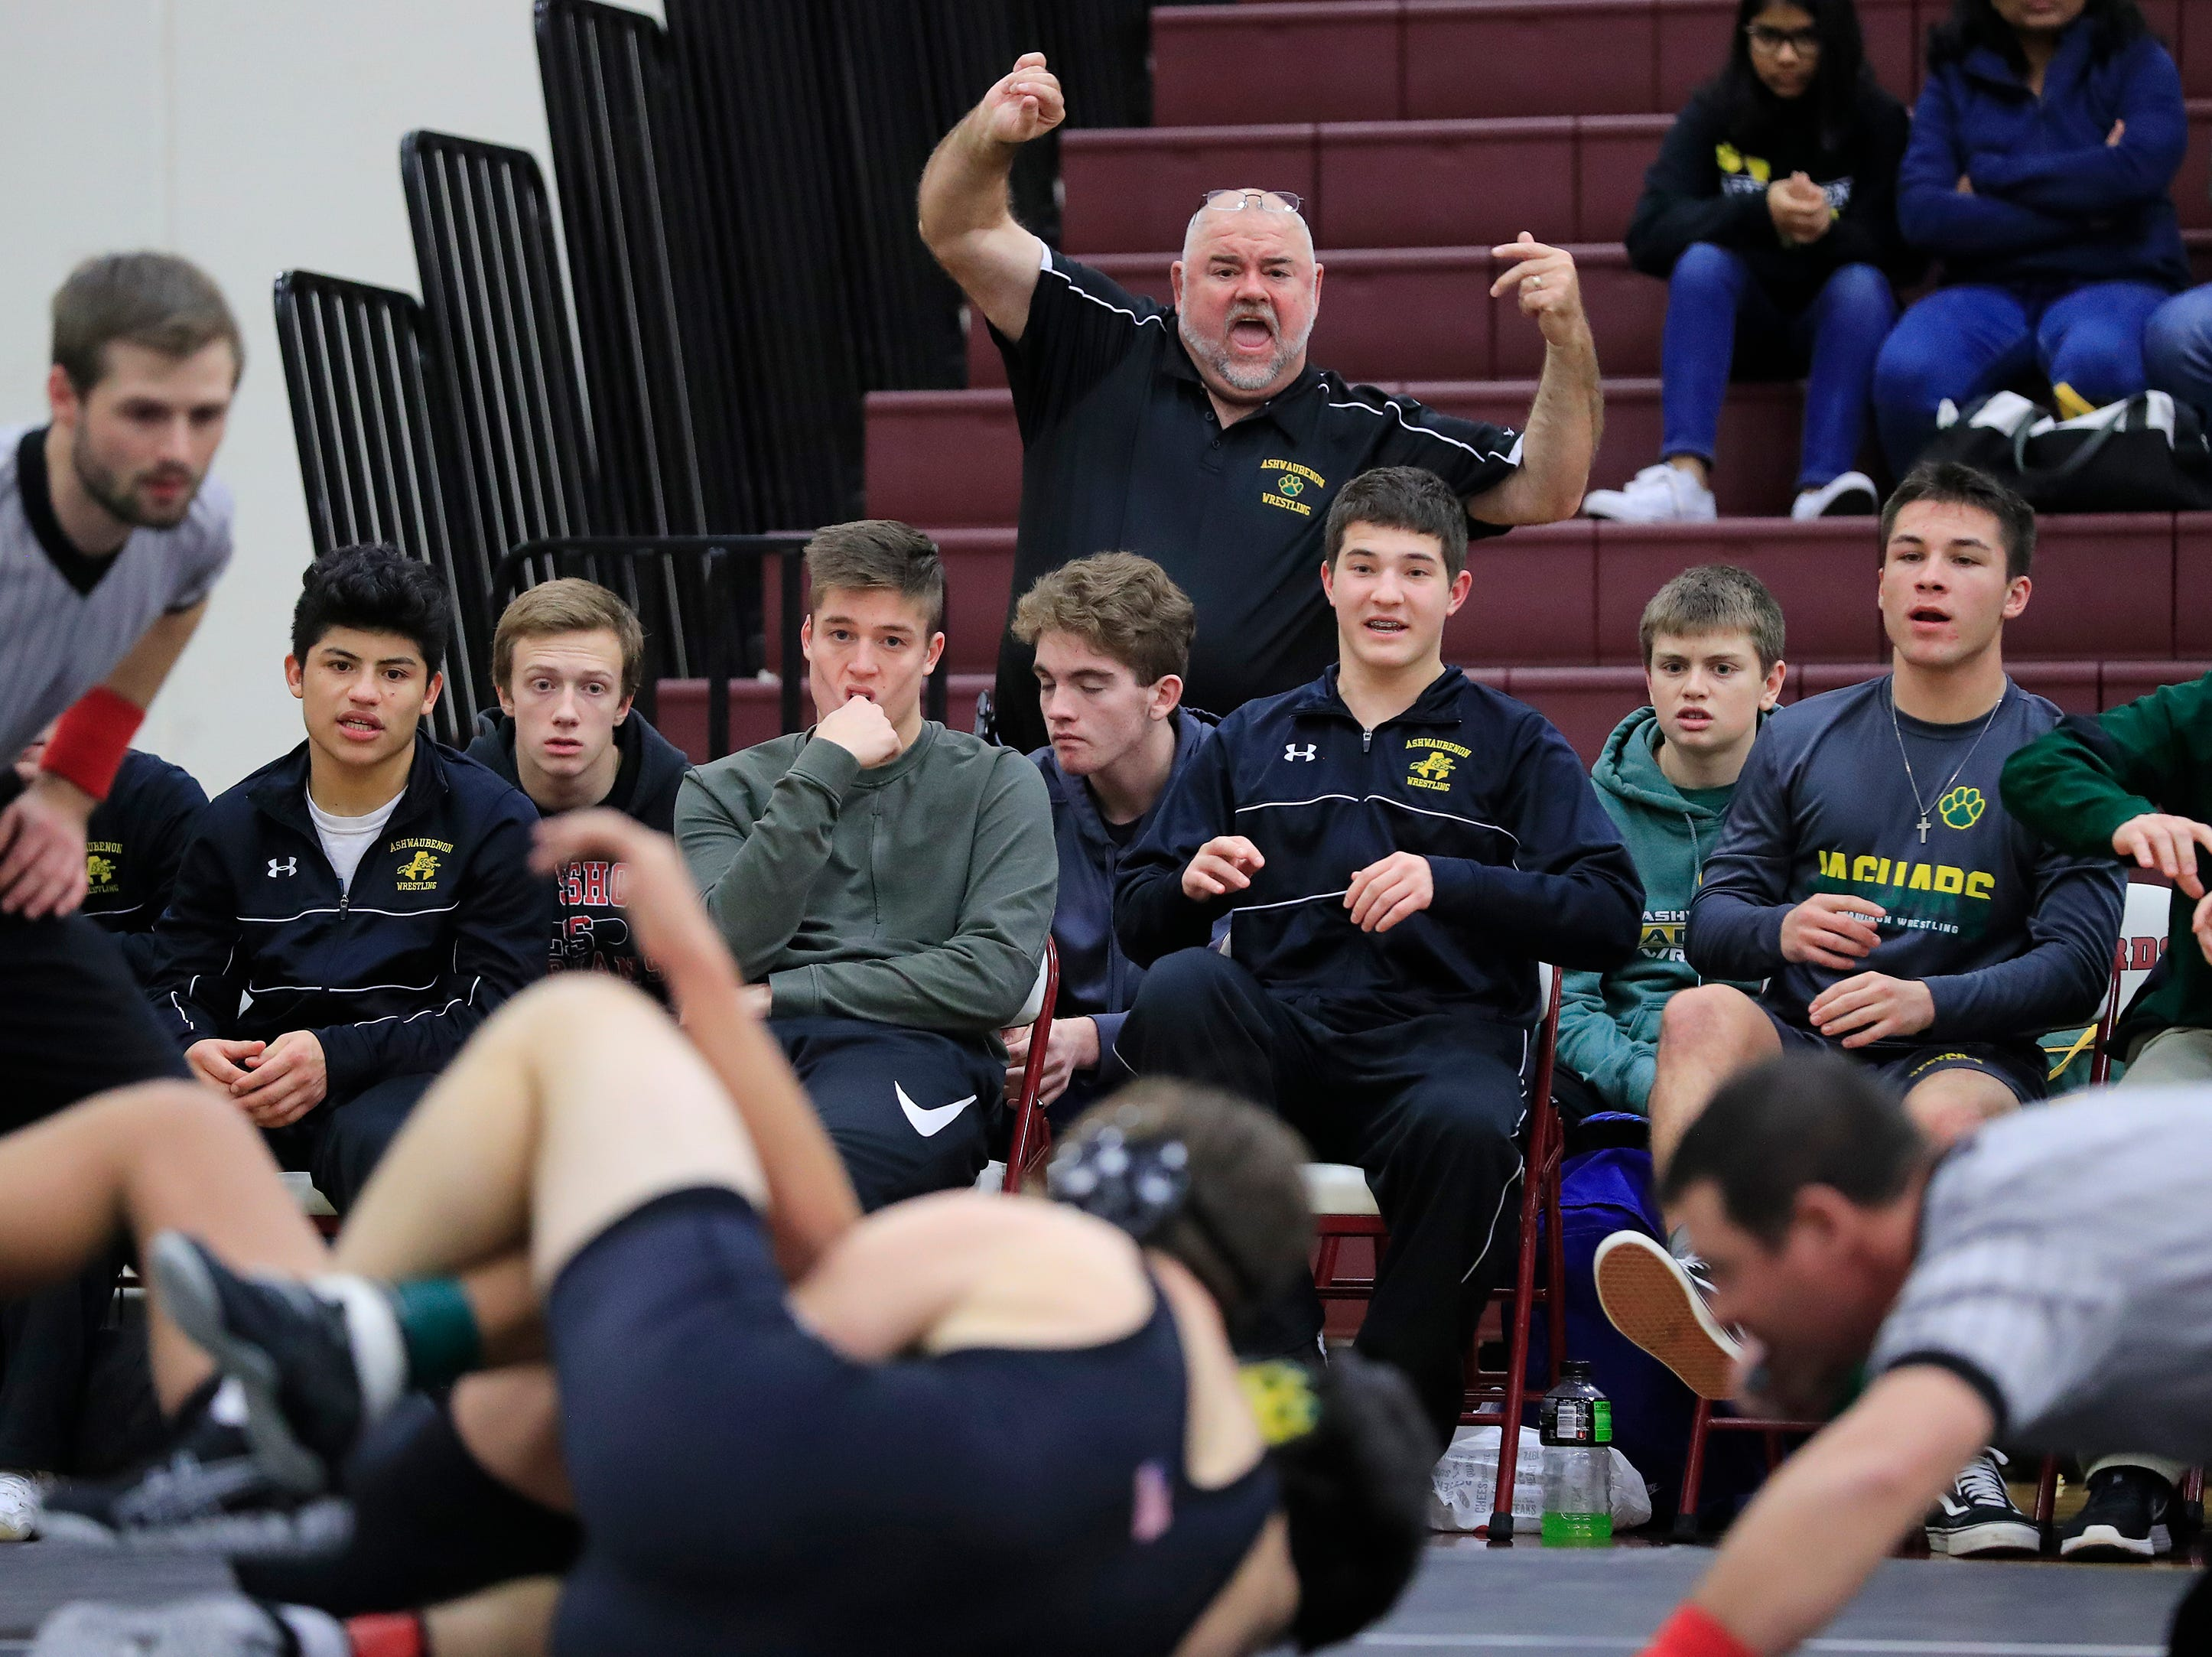 The Ashwaubenon bench reacts during a wrestling meet at De Pere high school on Thursday, December 13, 2018 in De Pere, Wis.